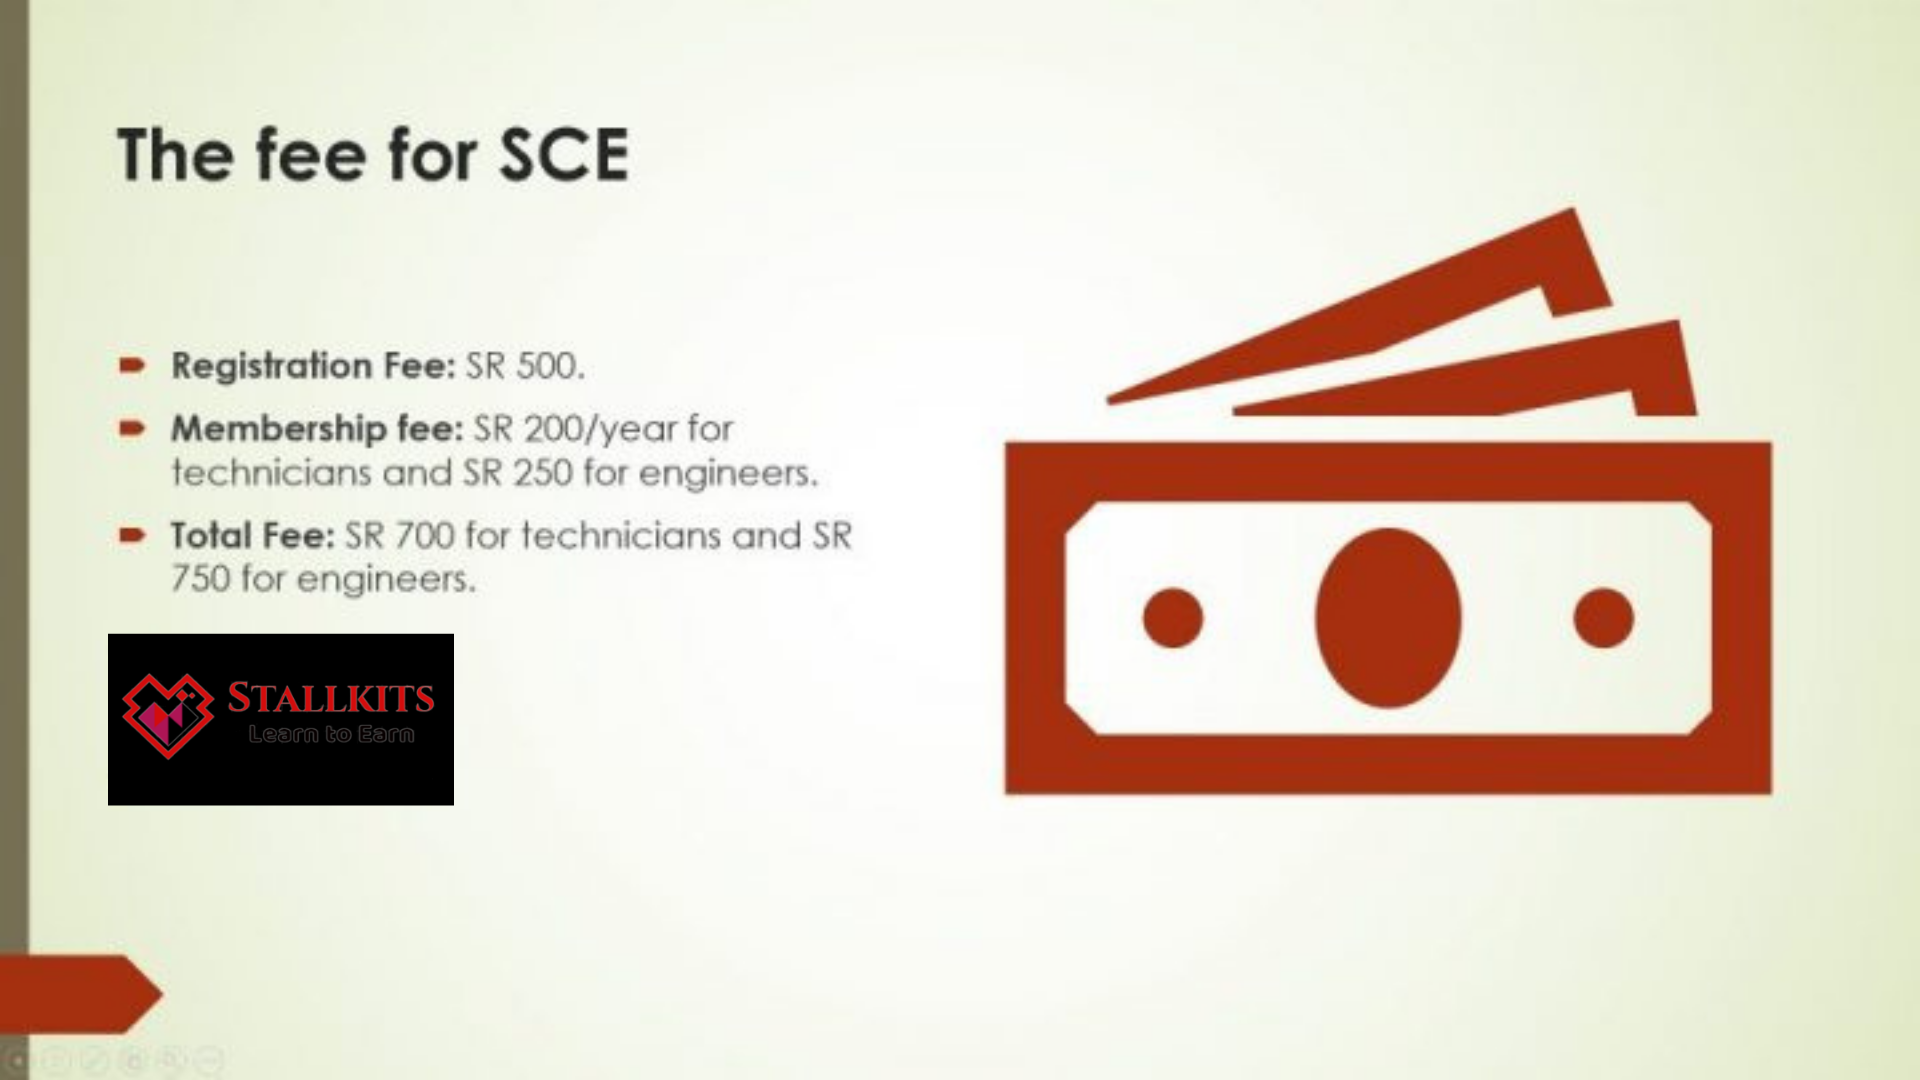 The Fee for SCE